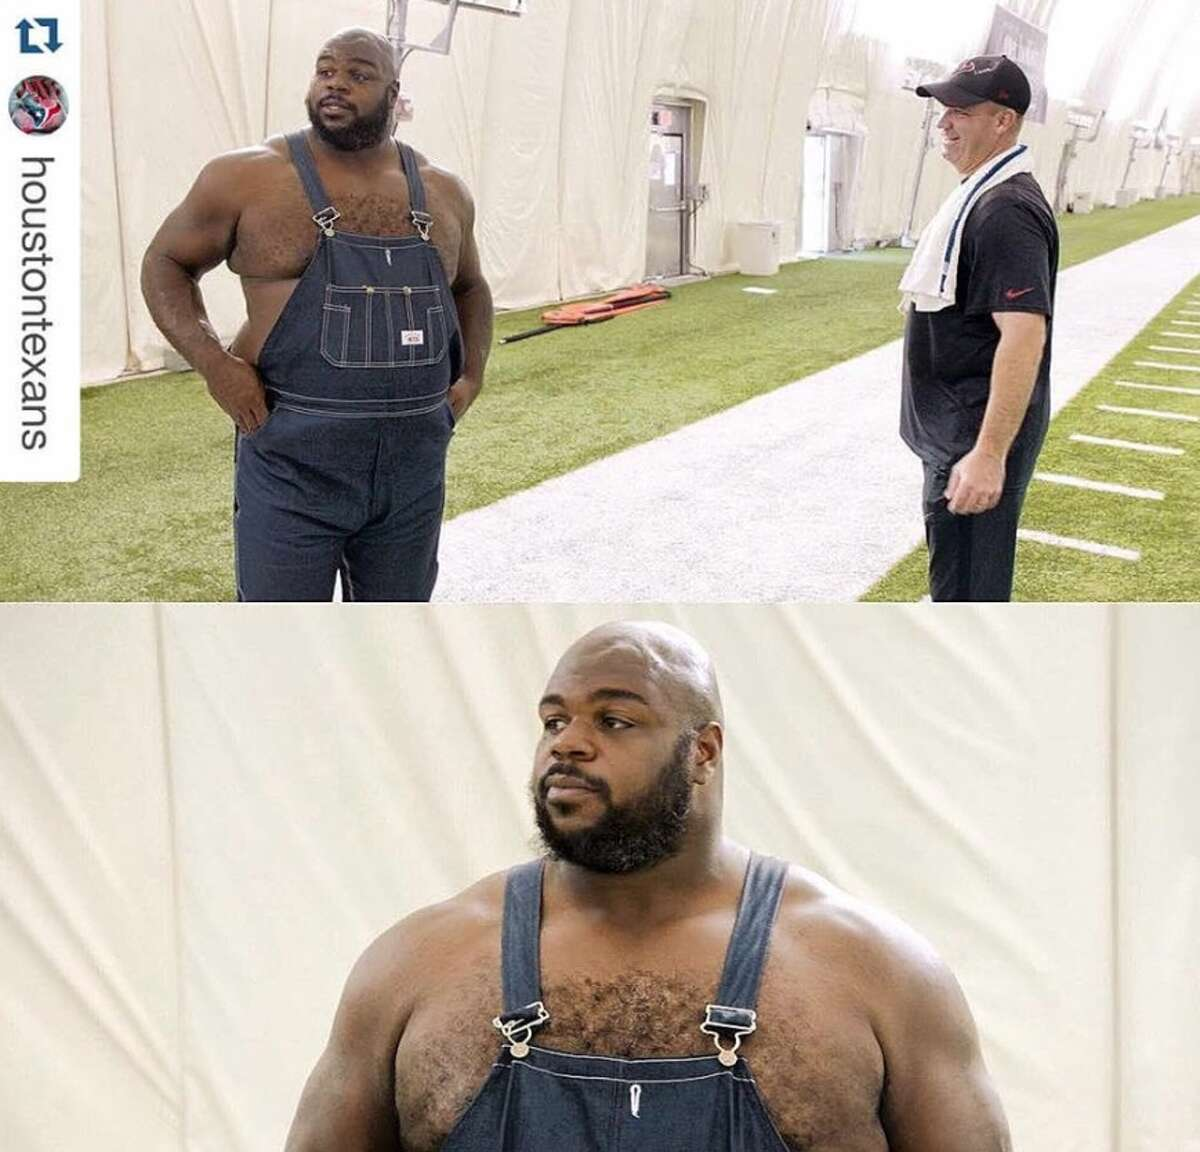 """Within just minutes of the Houston Texans and HBO's """"Hard Knocks"""" releasing a photo of defensive tackle Vince Wilfork in a pair of crisp overall """"jorts"""" from tonight's upcoming episode, Wilfork became meme fodder."""